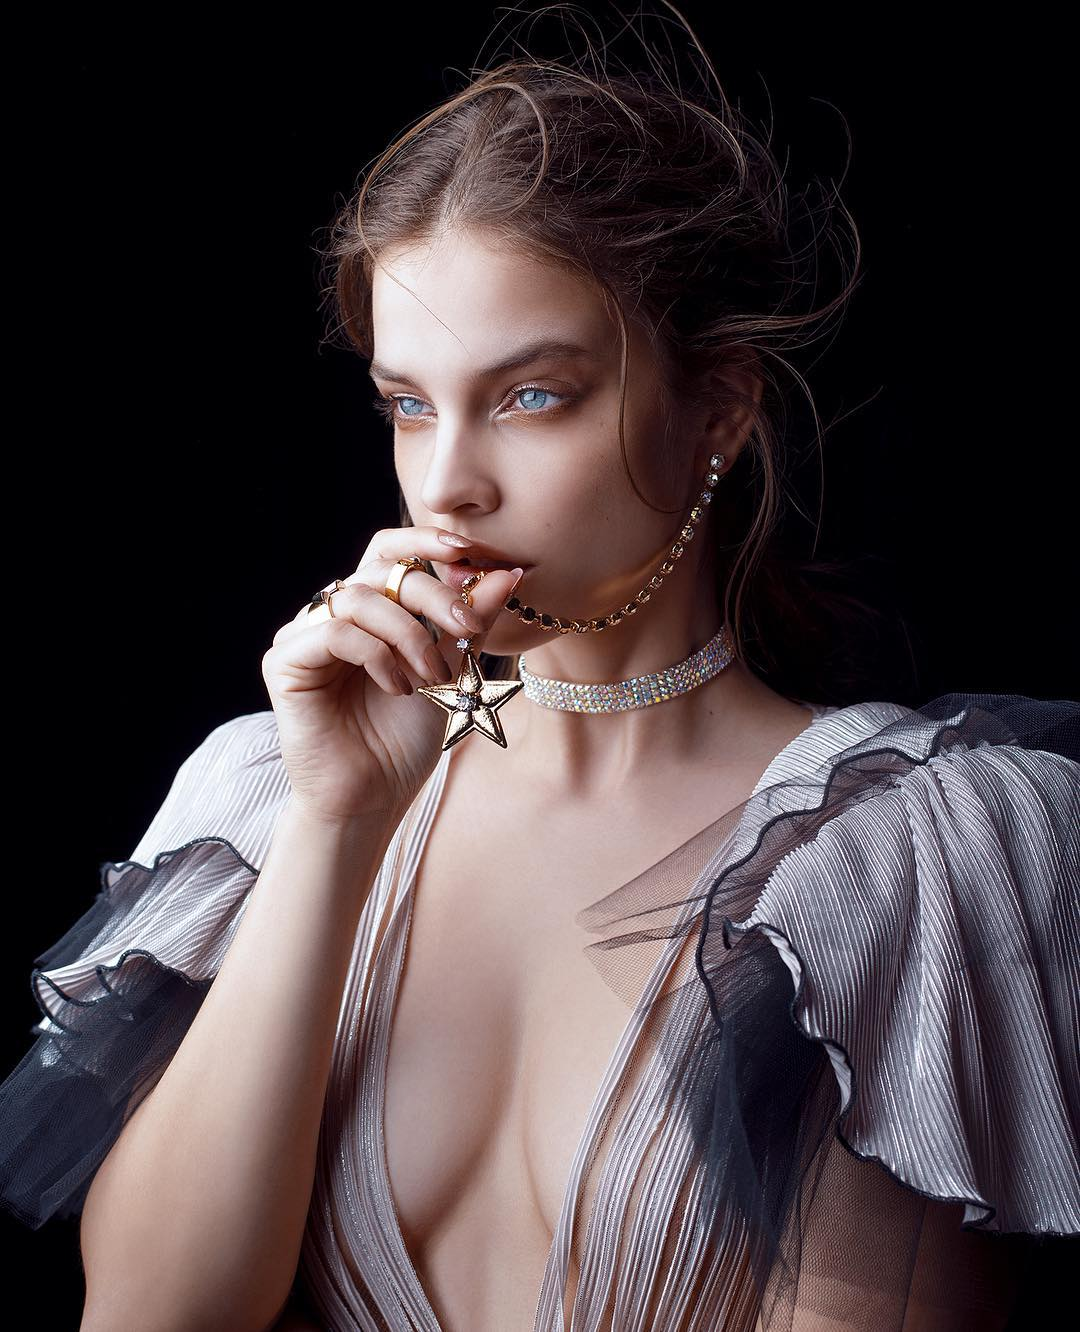 Barbara Palvin features in Fashion Street the Anniversary Issue 2018 Special Edition